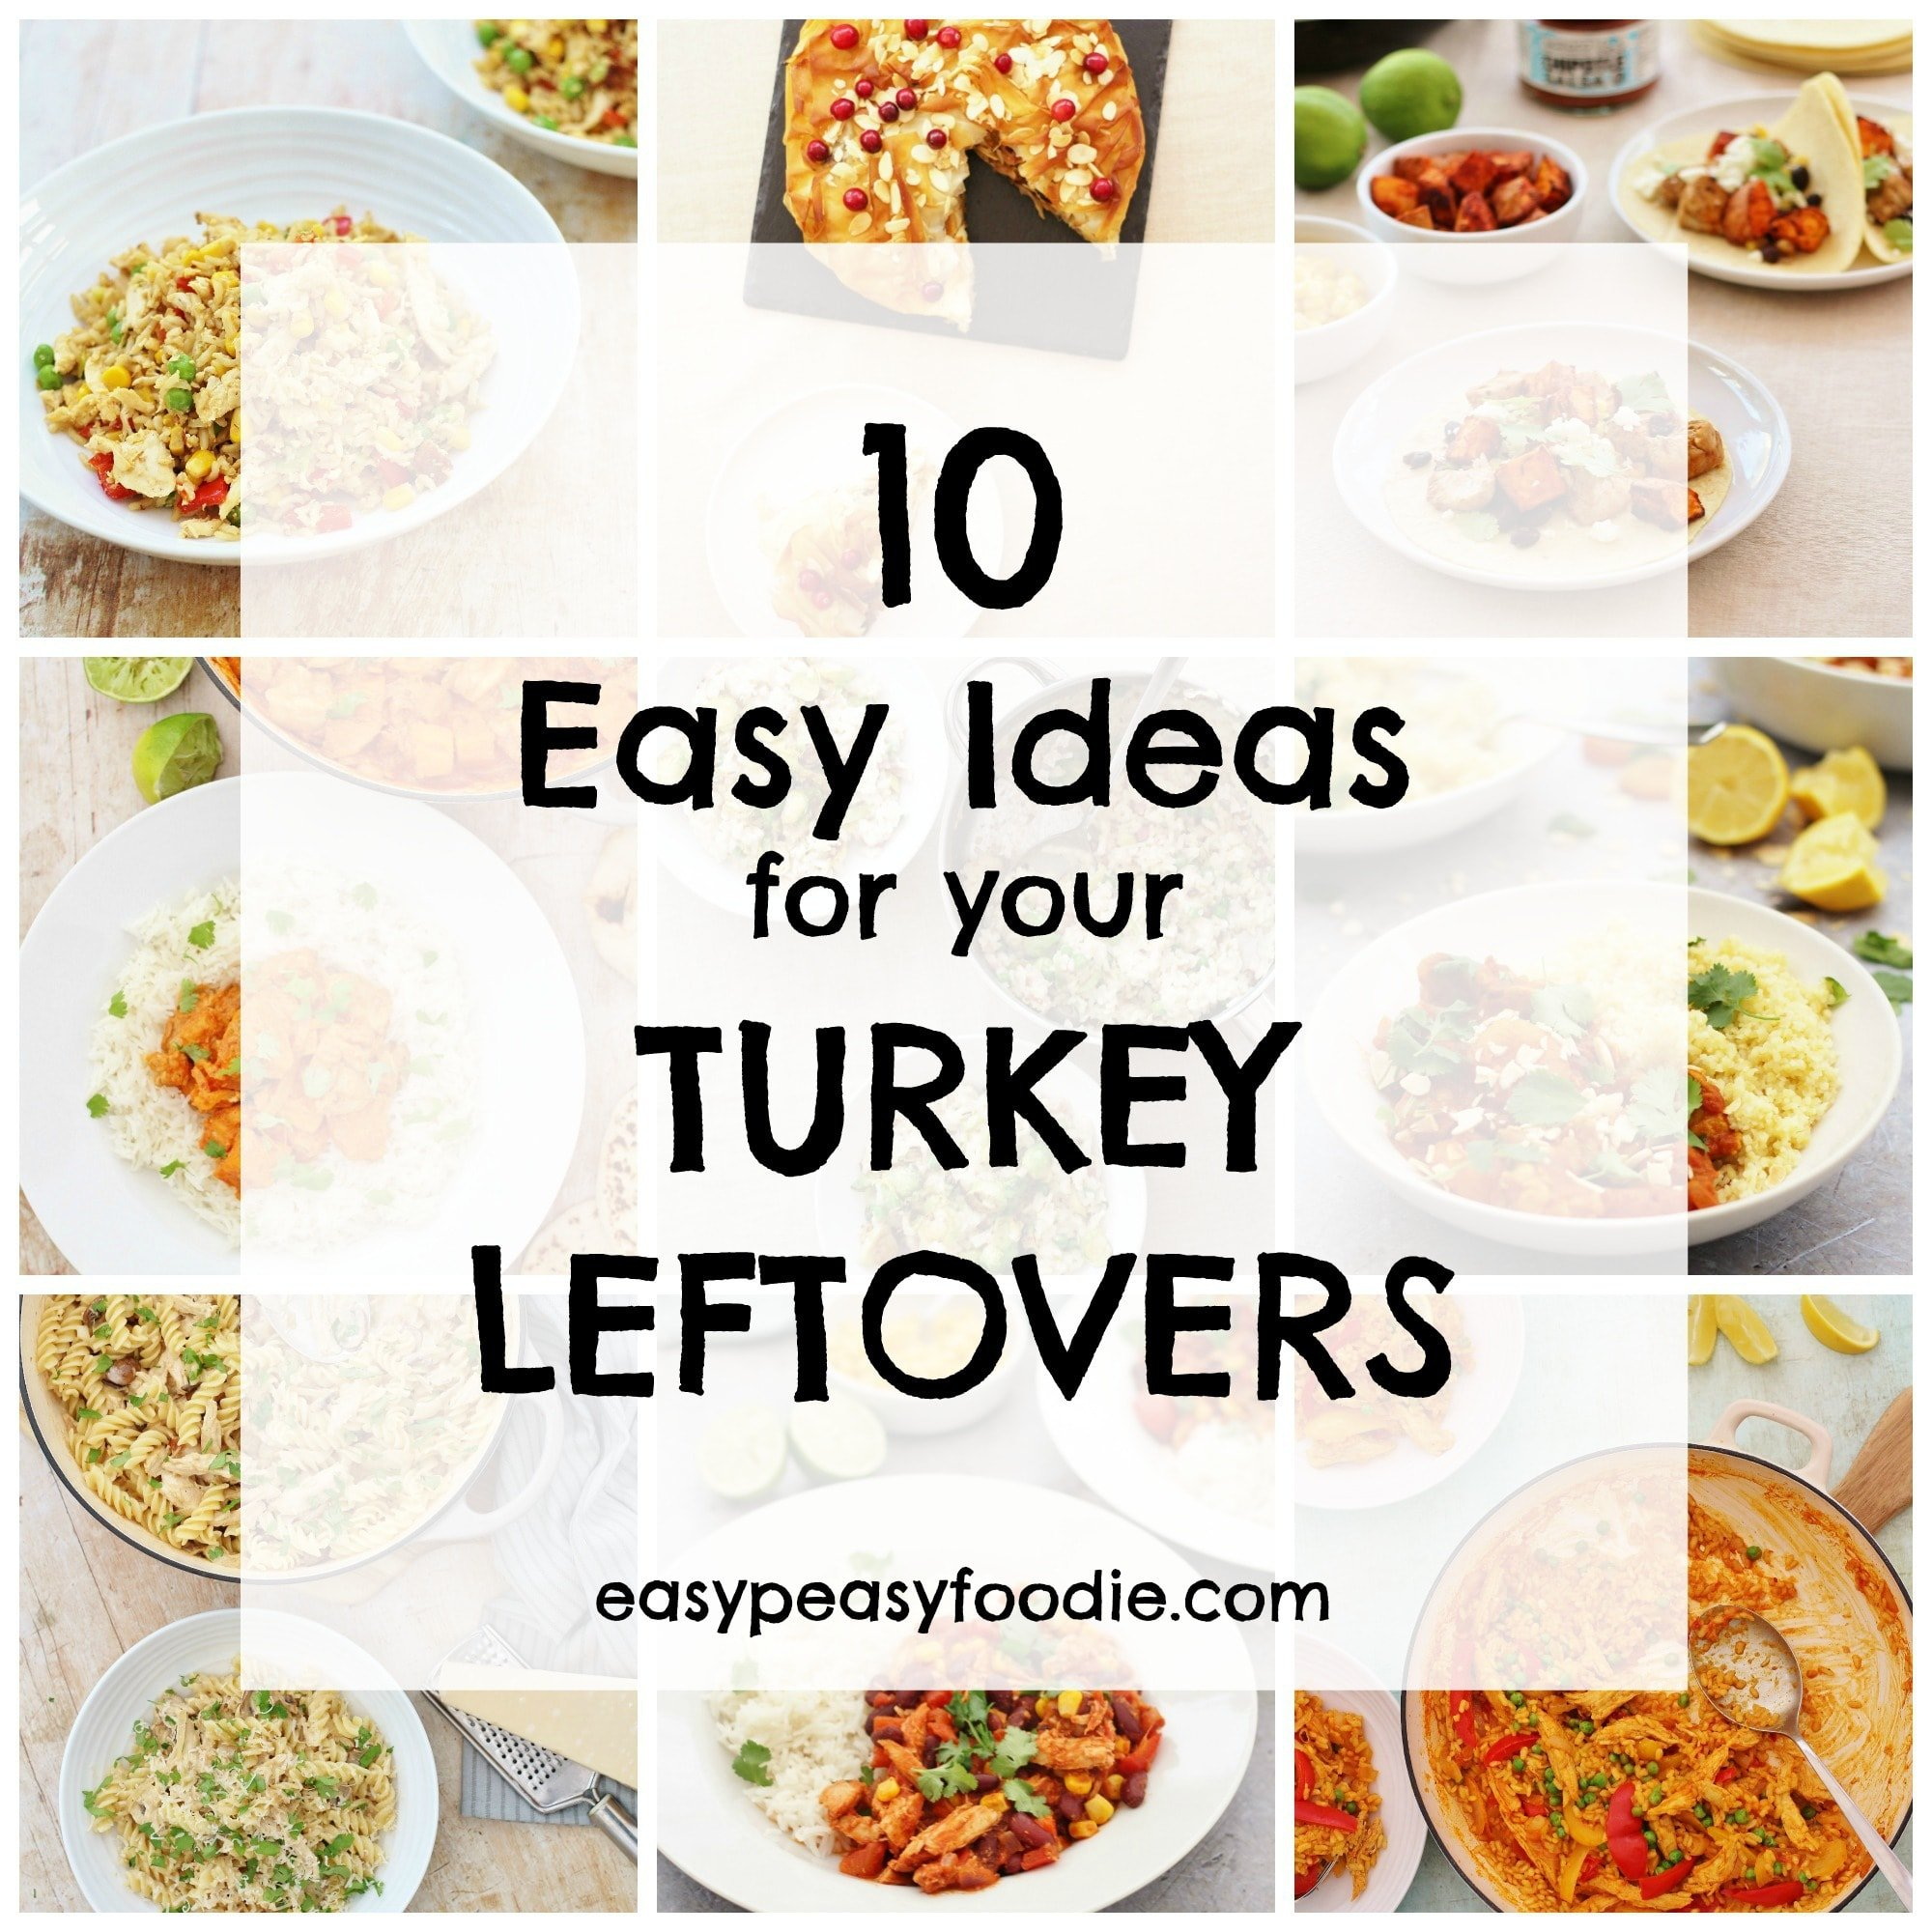 What To Do With The Leftovers Turkey Sandwich Anyone: 10 Easy Ideas For Your Turkey Leftovers